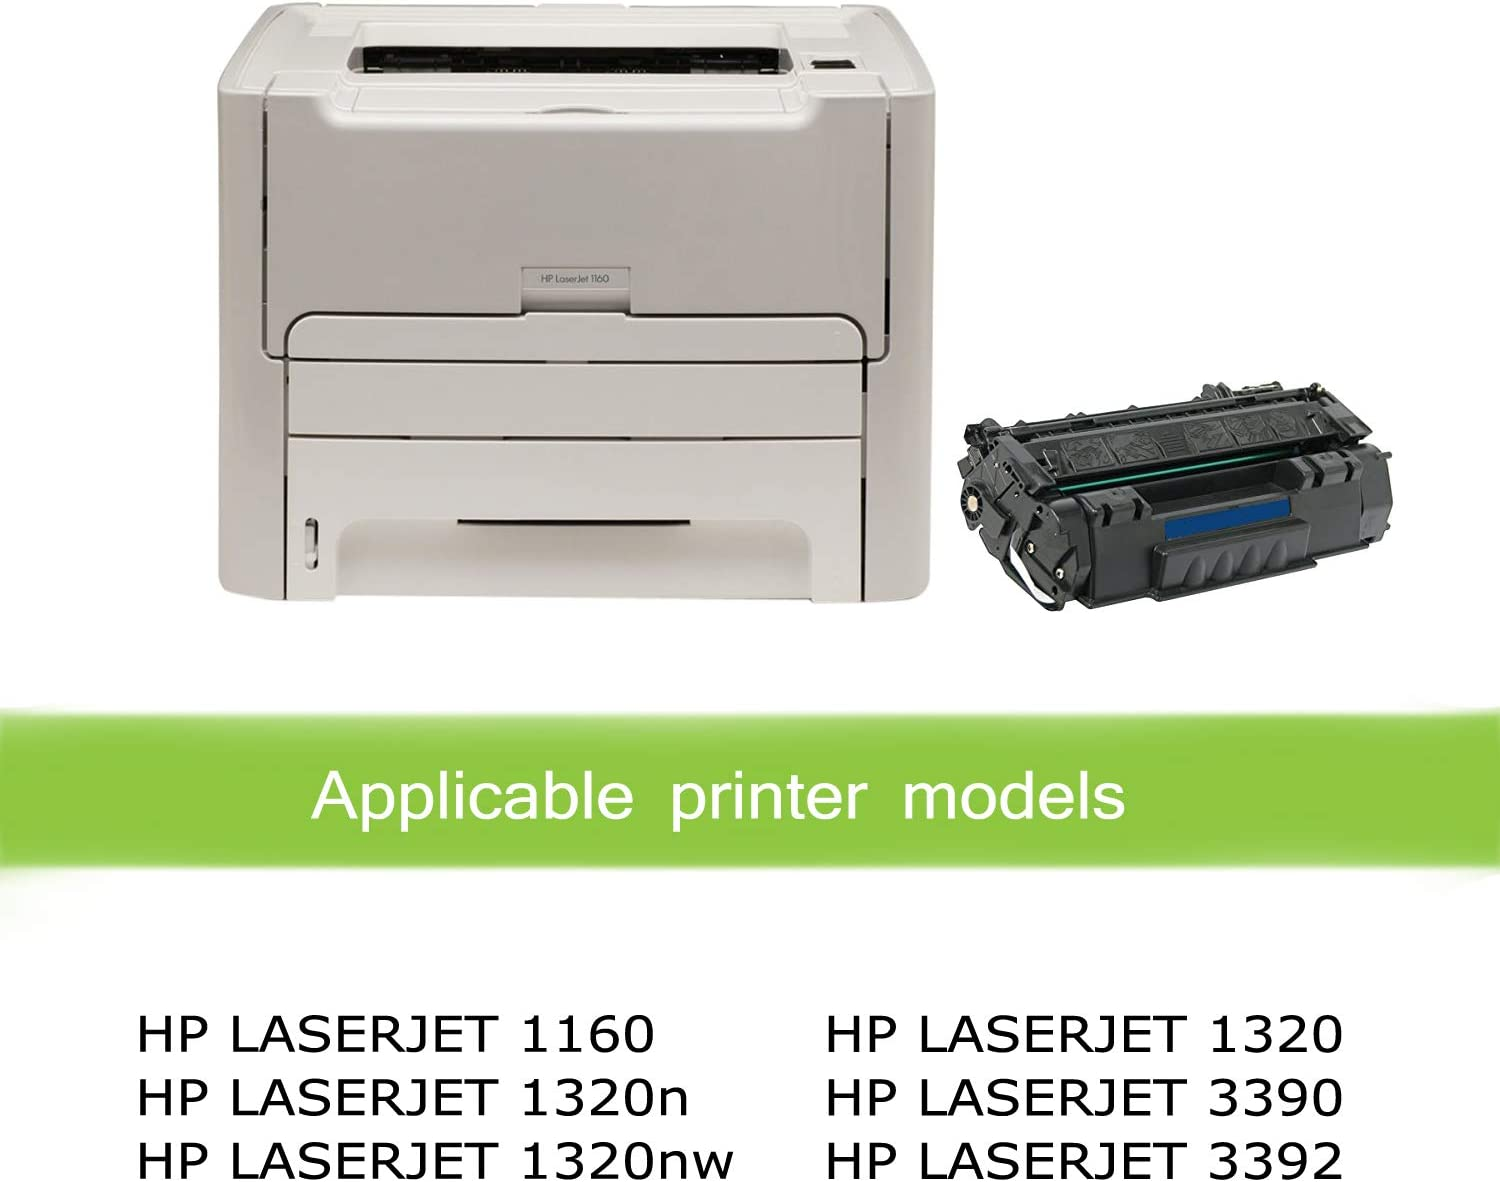 1320 1320tn Awesometoner Compatible Toner Cartridge Replacement for HP Q5949A MICR use with Laserjet 1160 Black, 3-Pack 3392 3390 1320nw 1320n